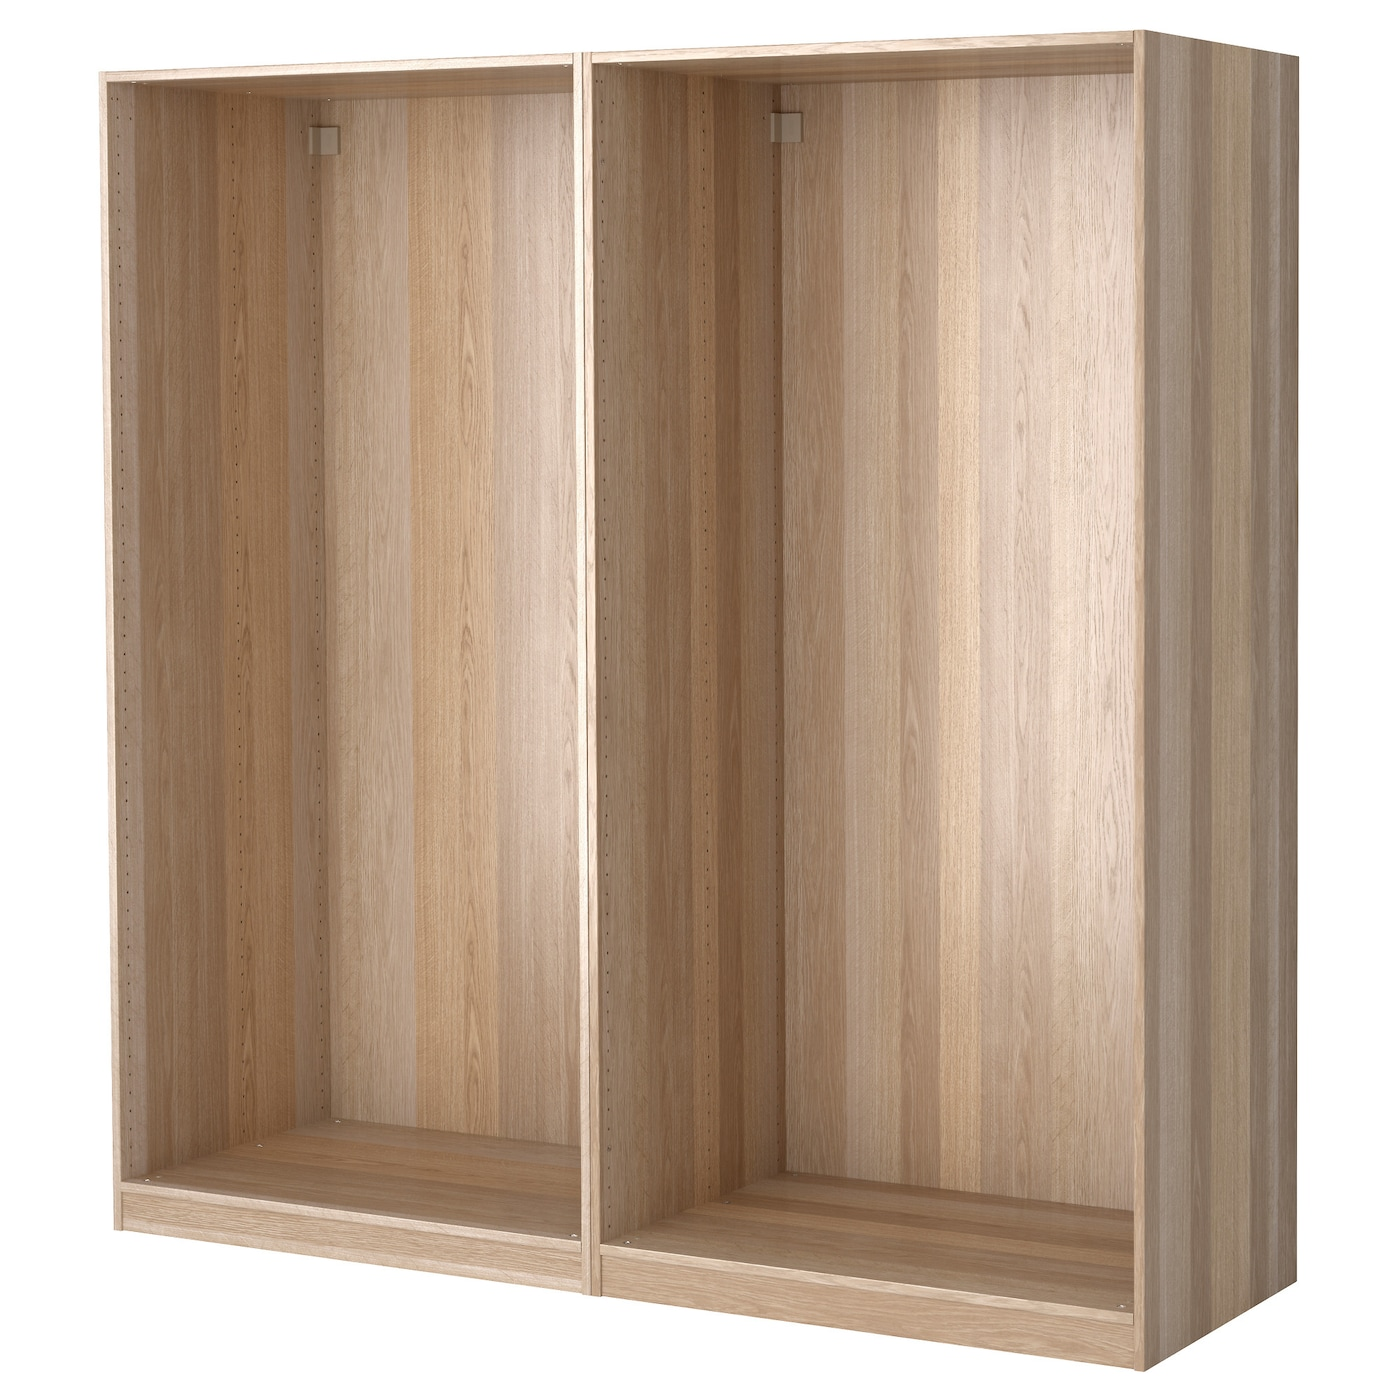 Pax 2 wardrobe frames white stained oak 200x58x201 cm ikea - Armoire chambre 120 cm largeur ...